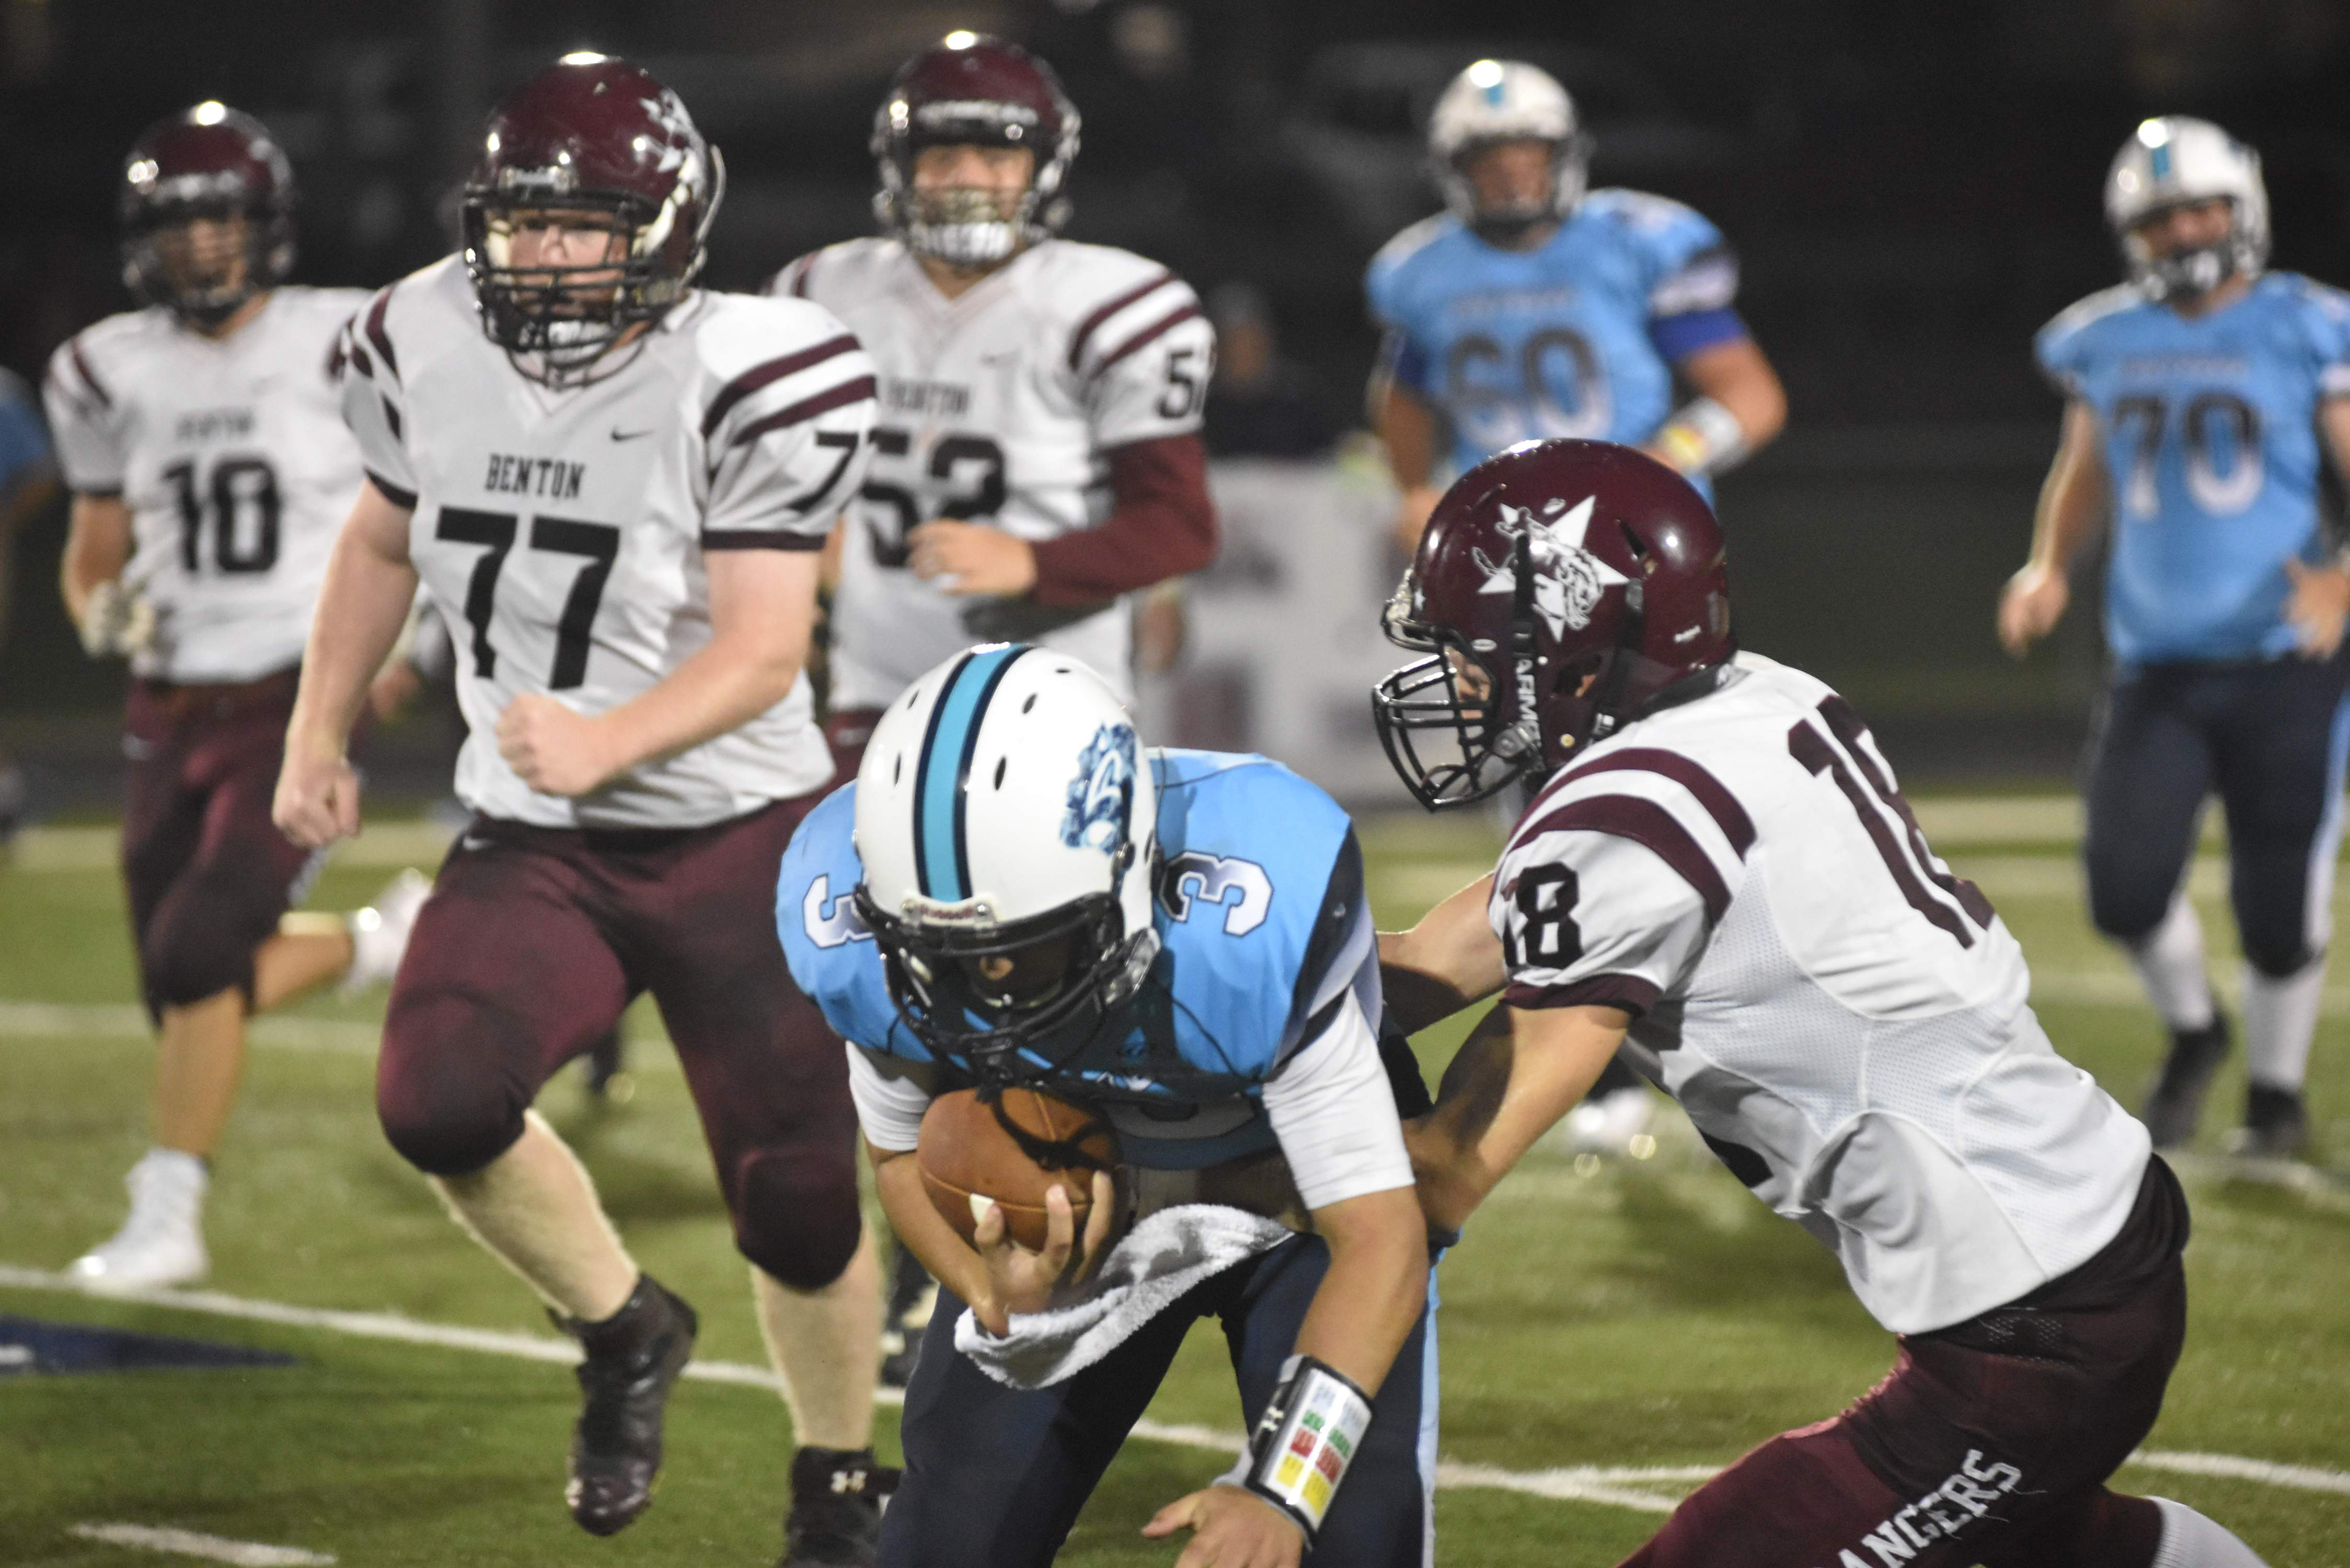 Pinckneyville quarterback Hunter Riggins runs for a short gain while being tackled by Benton's Joey Craig during a prep football game at Pinckneyville on Friday night. The Panthers edged out the Rangers, 23-20.